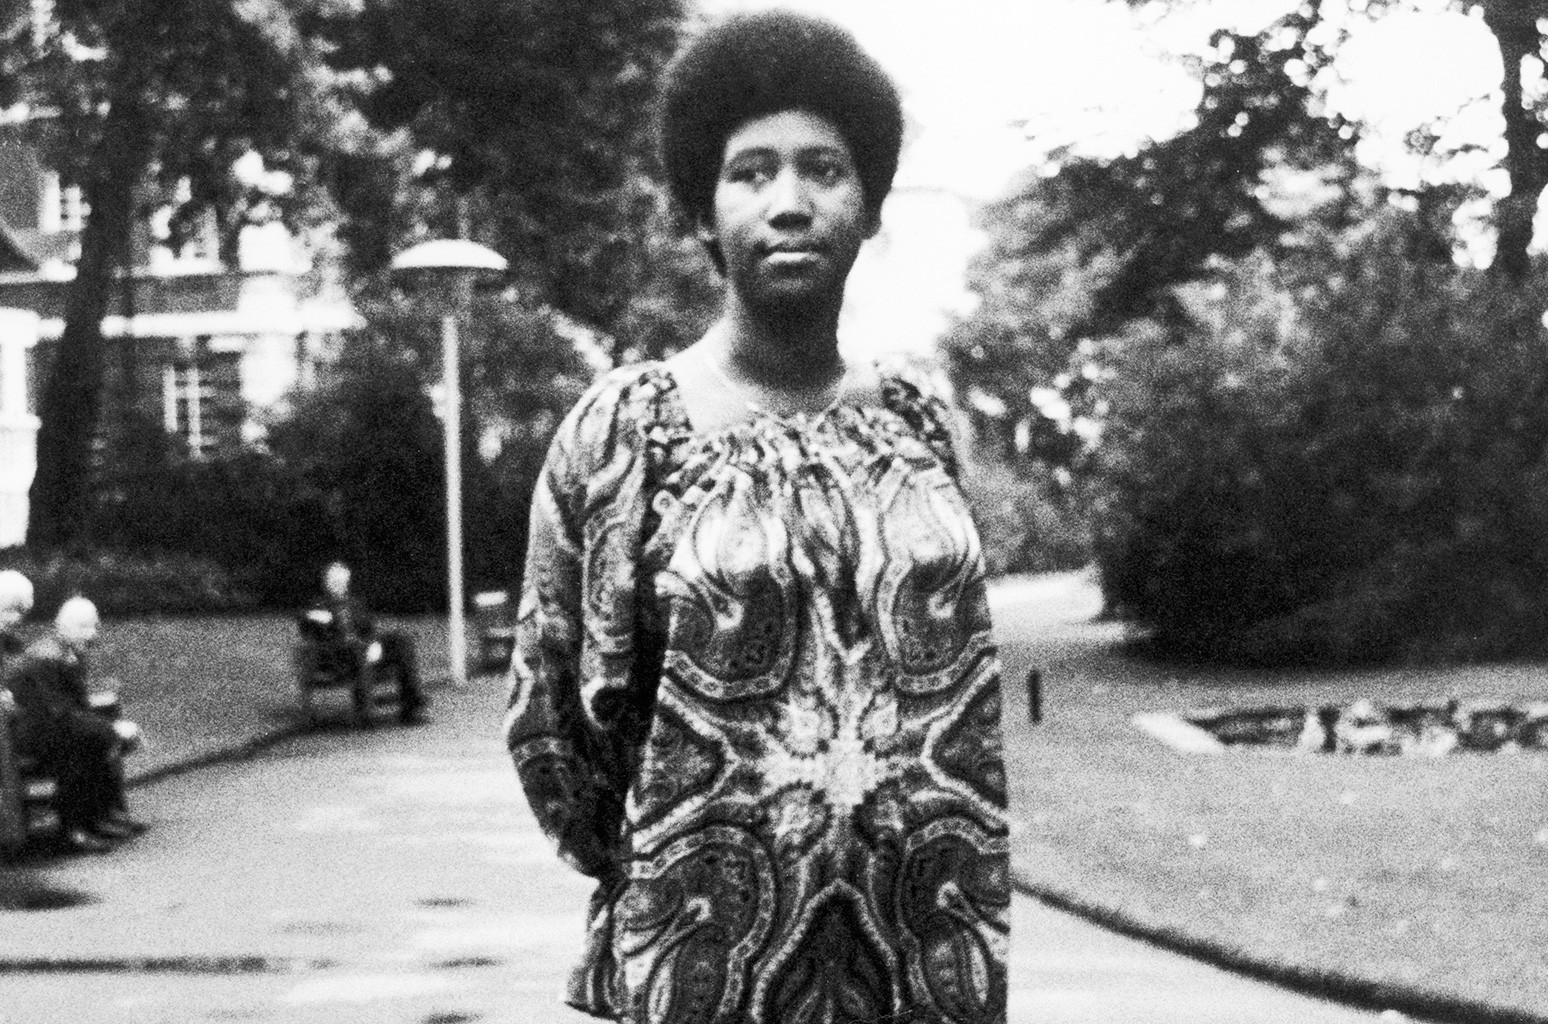 Aretha Franklin photographed on July 28, 1970.